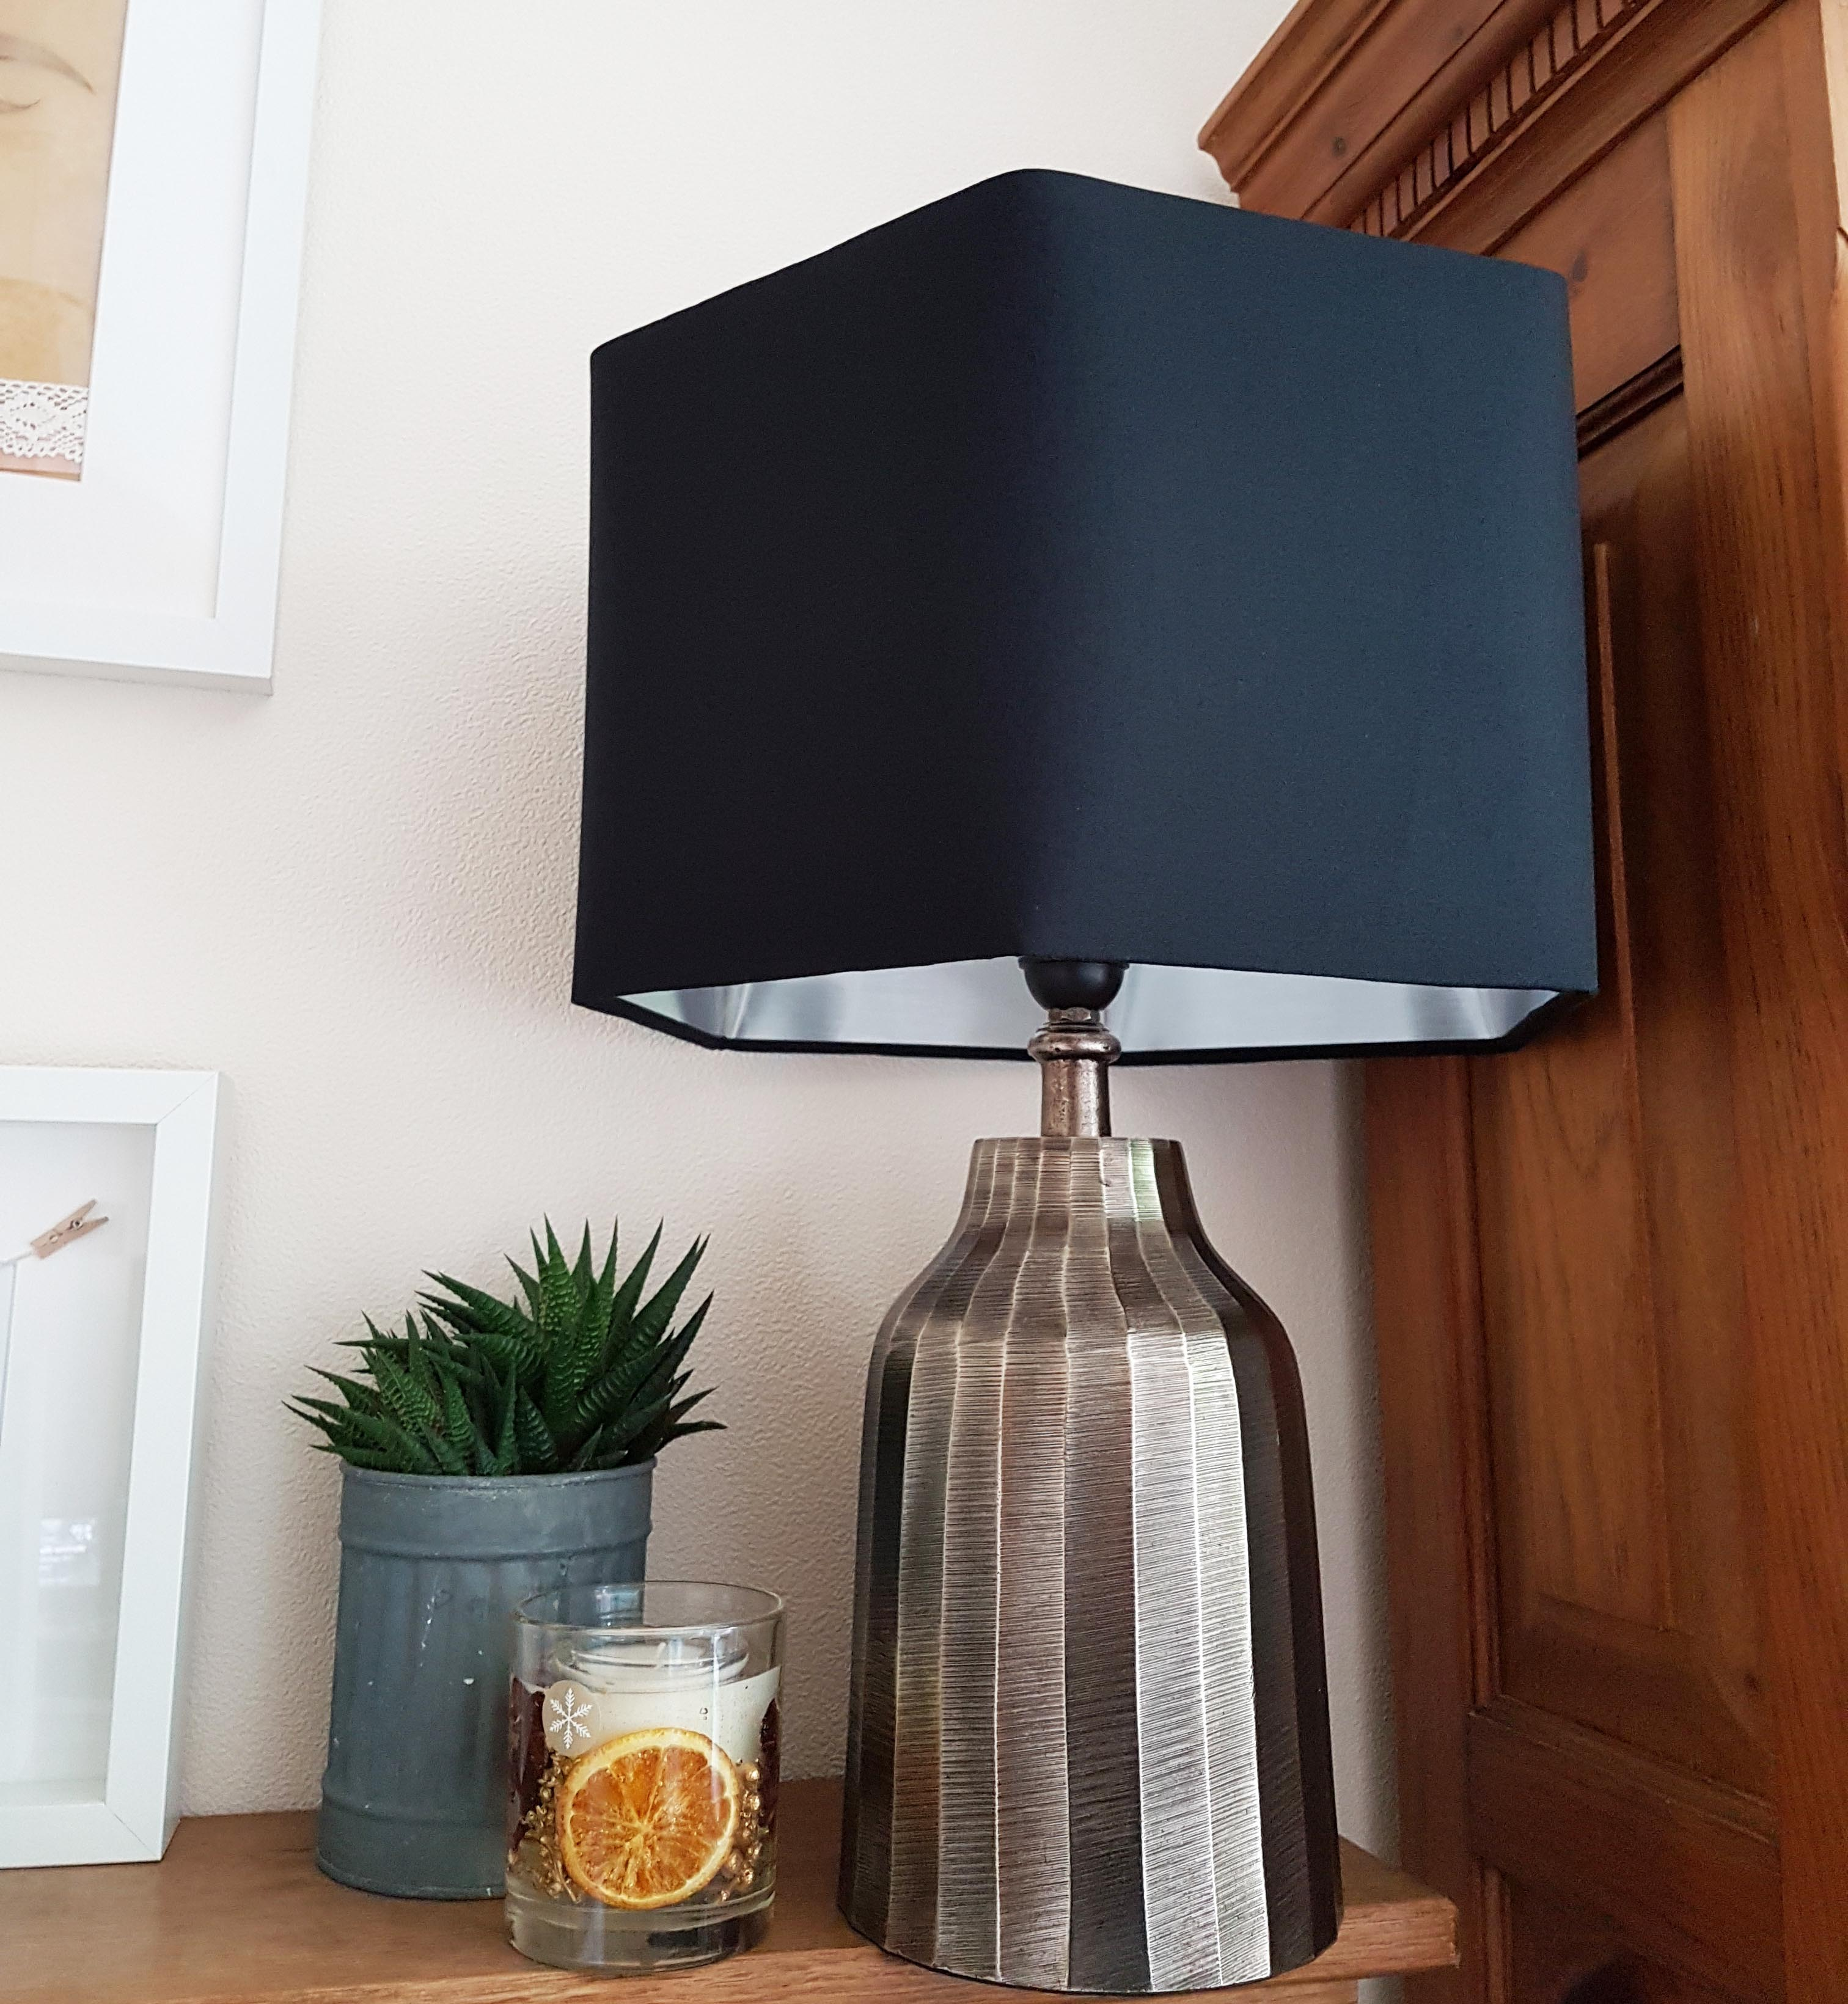 Silver Metal Table Lamp with Black Hexagon lampshade